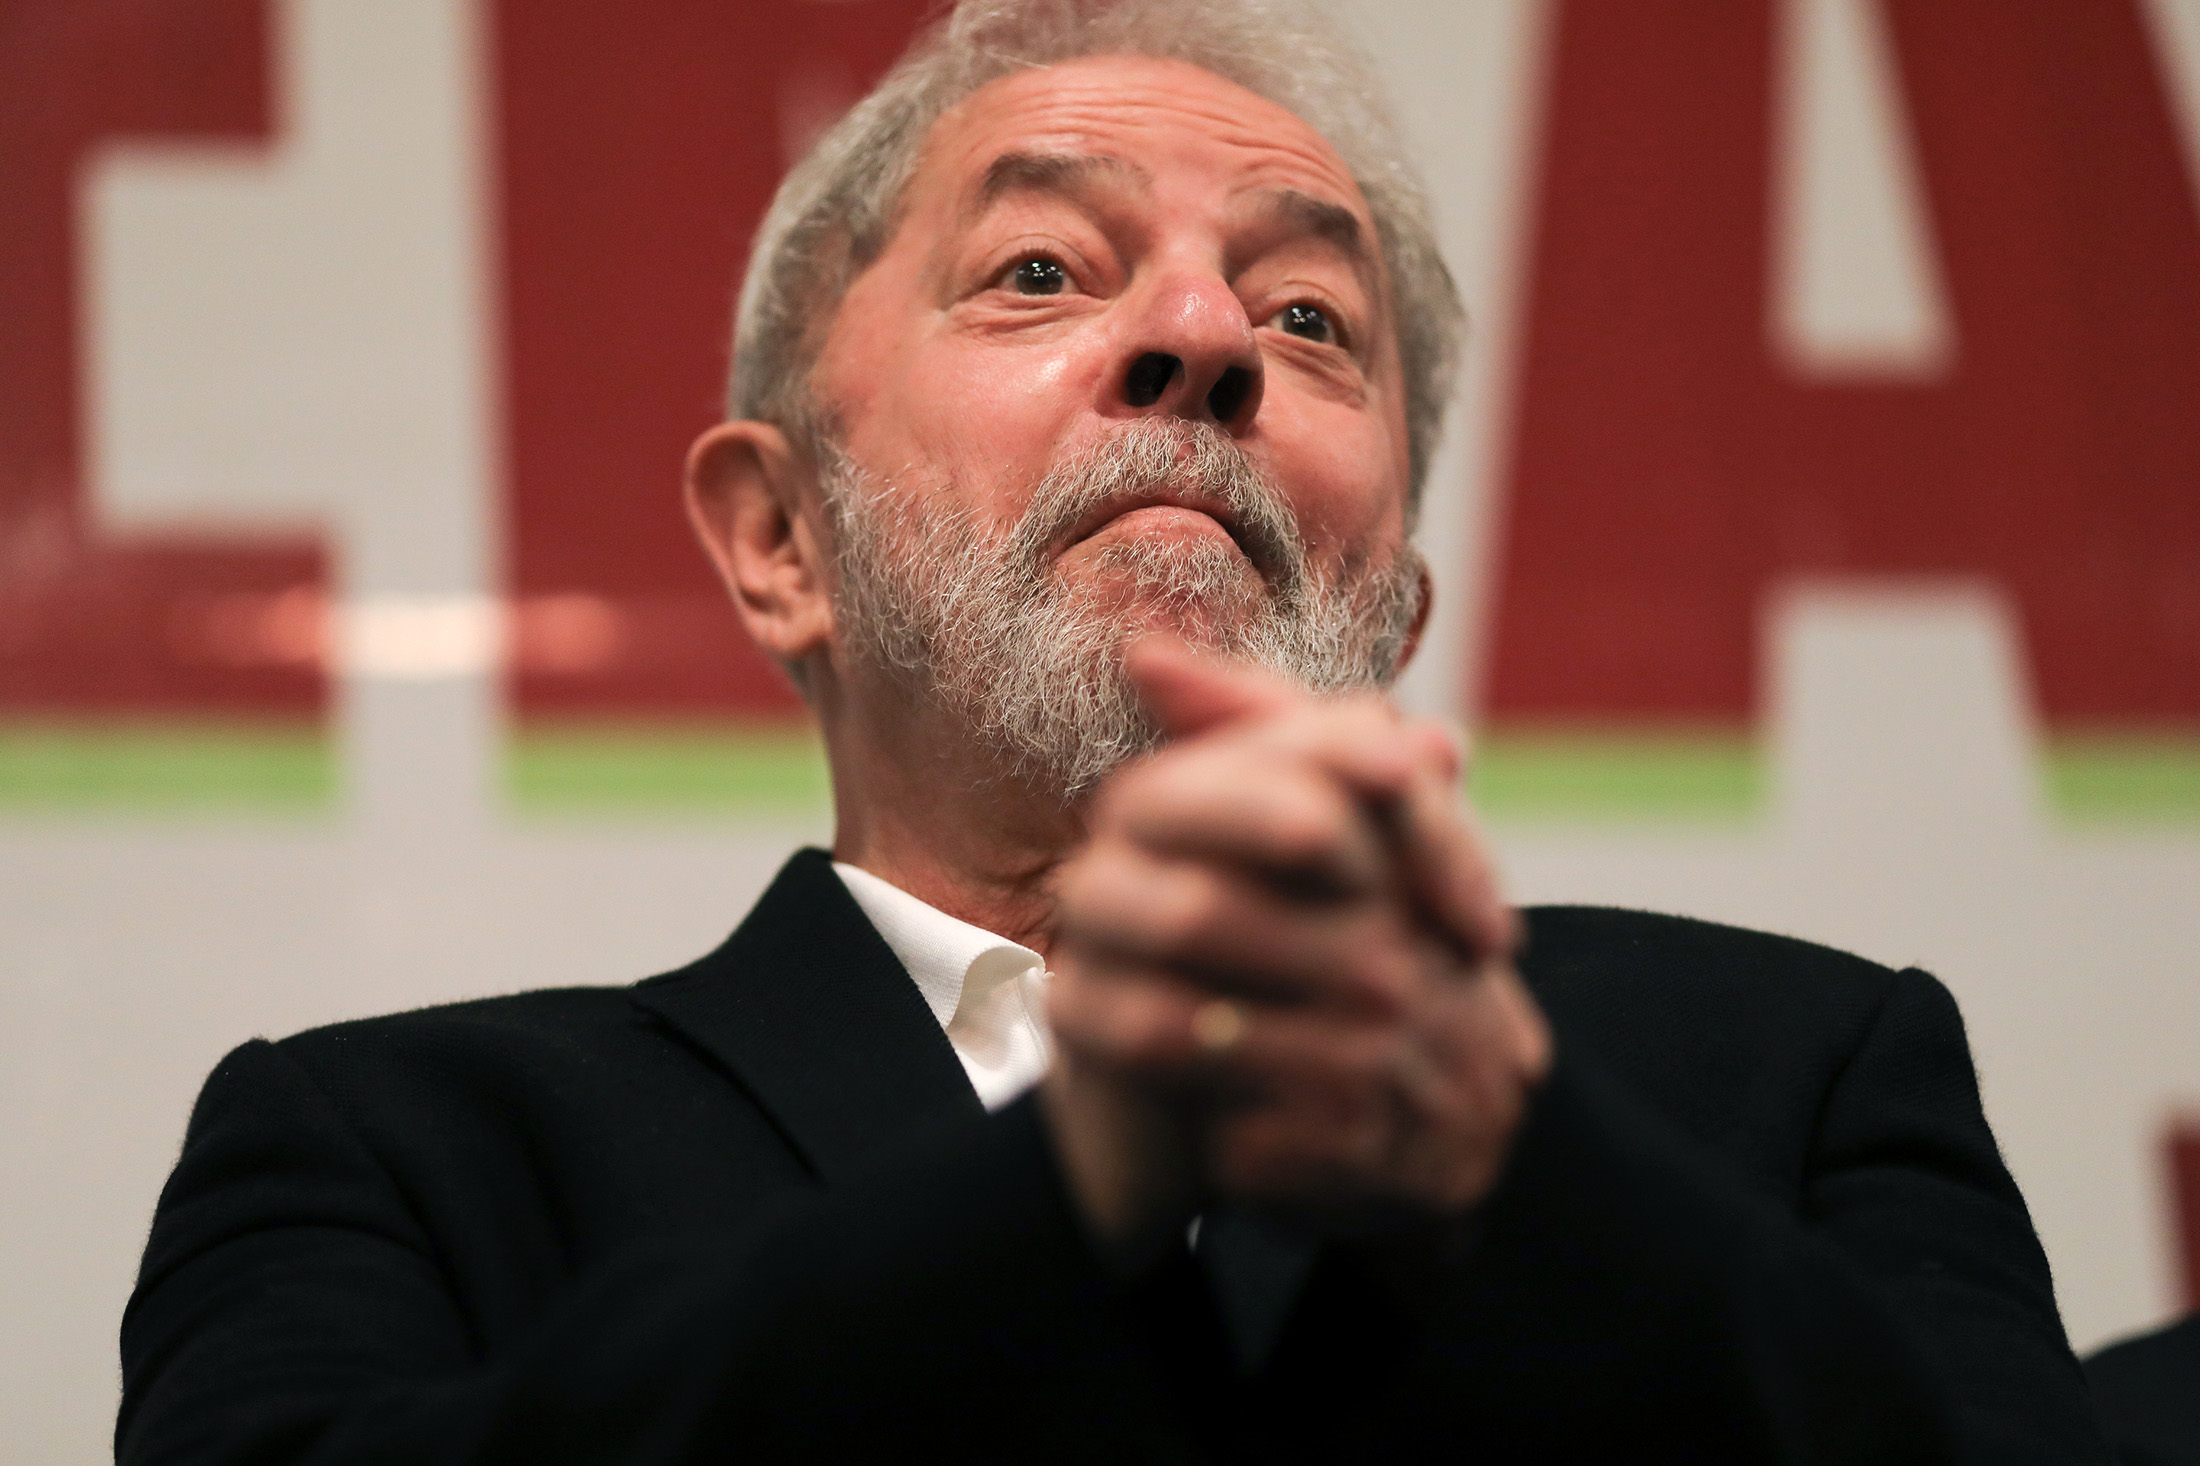 Brazil's Lula Keeps Campaigning Despite Conviction